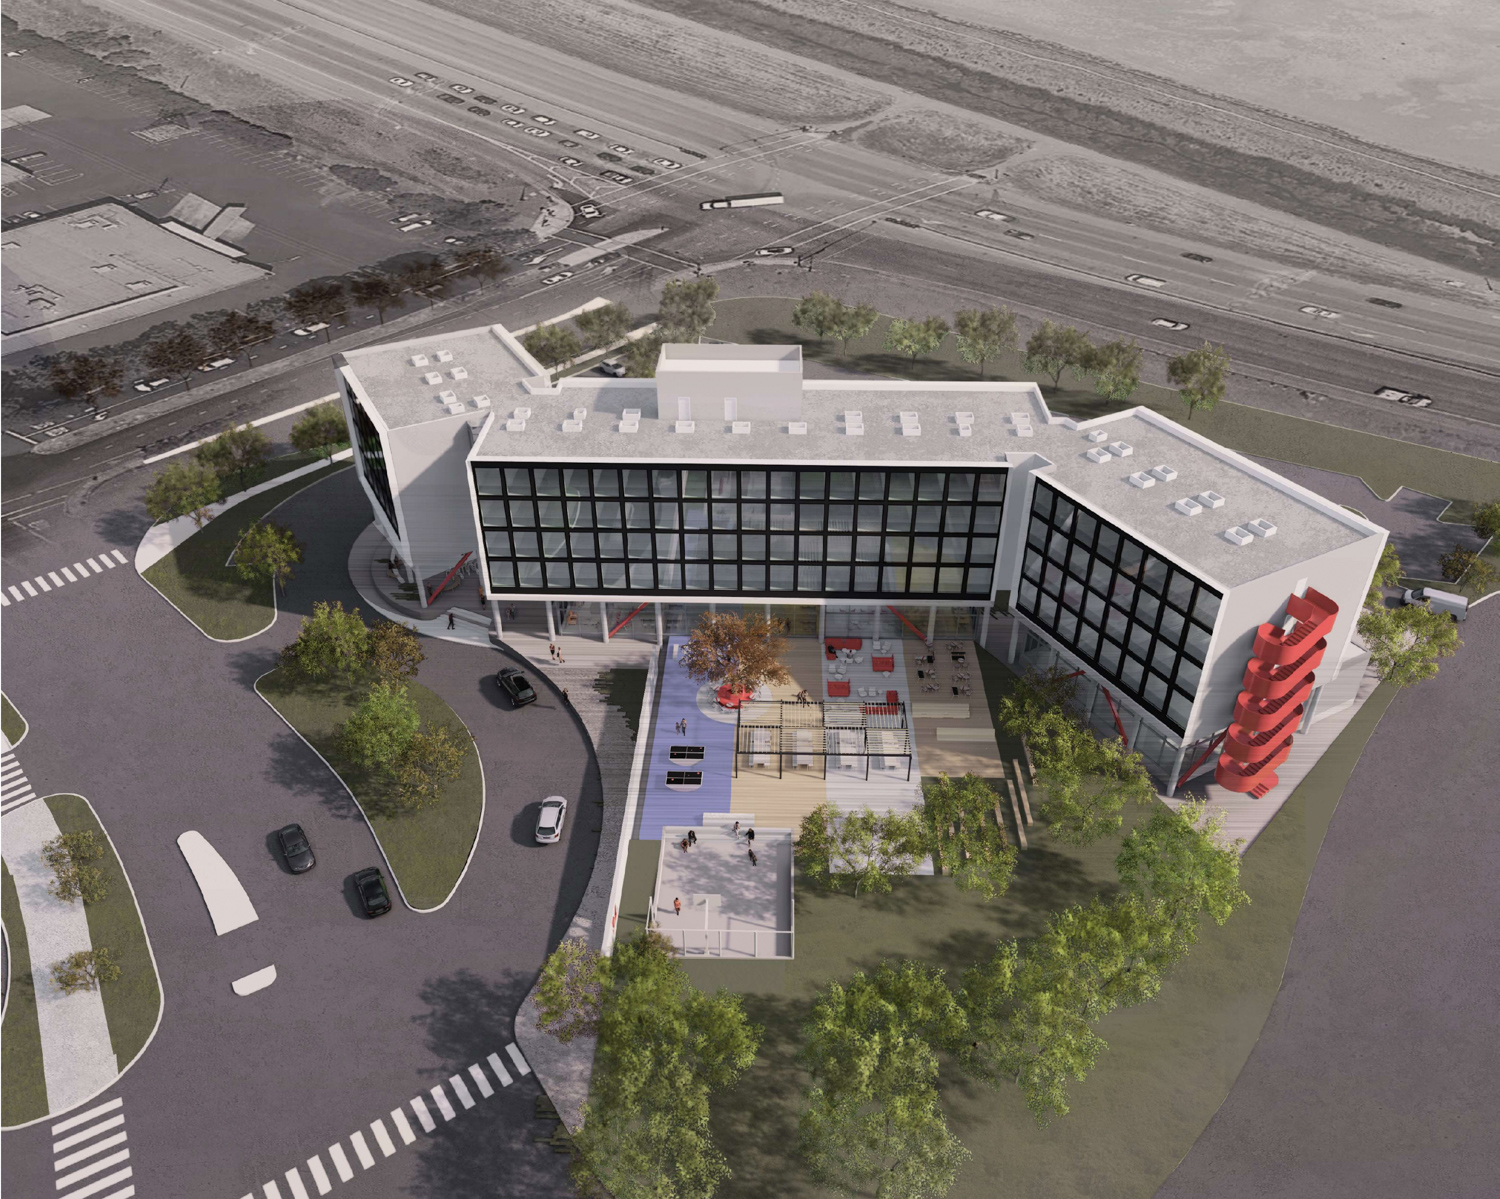 CitizenM Hotel at 3 Facebook Way aerial view, design by Gensler